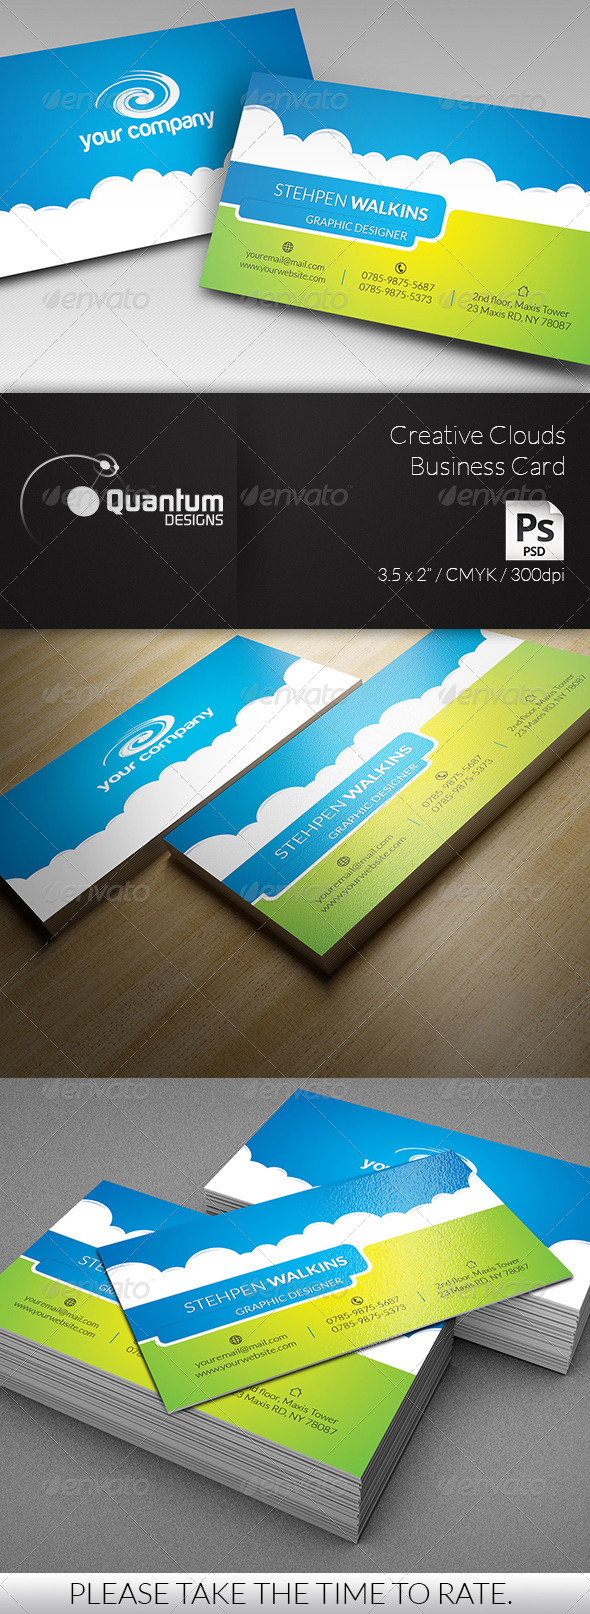 GraphicRiver Creative Clouds Business Card 6220087